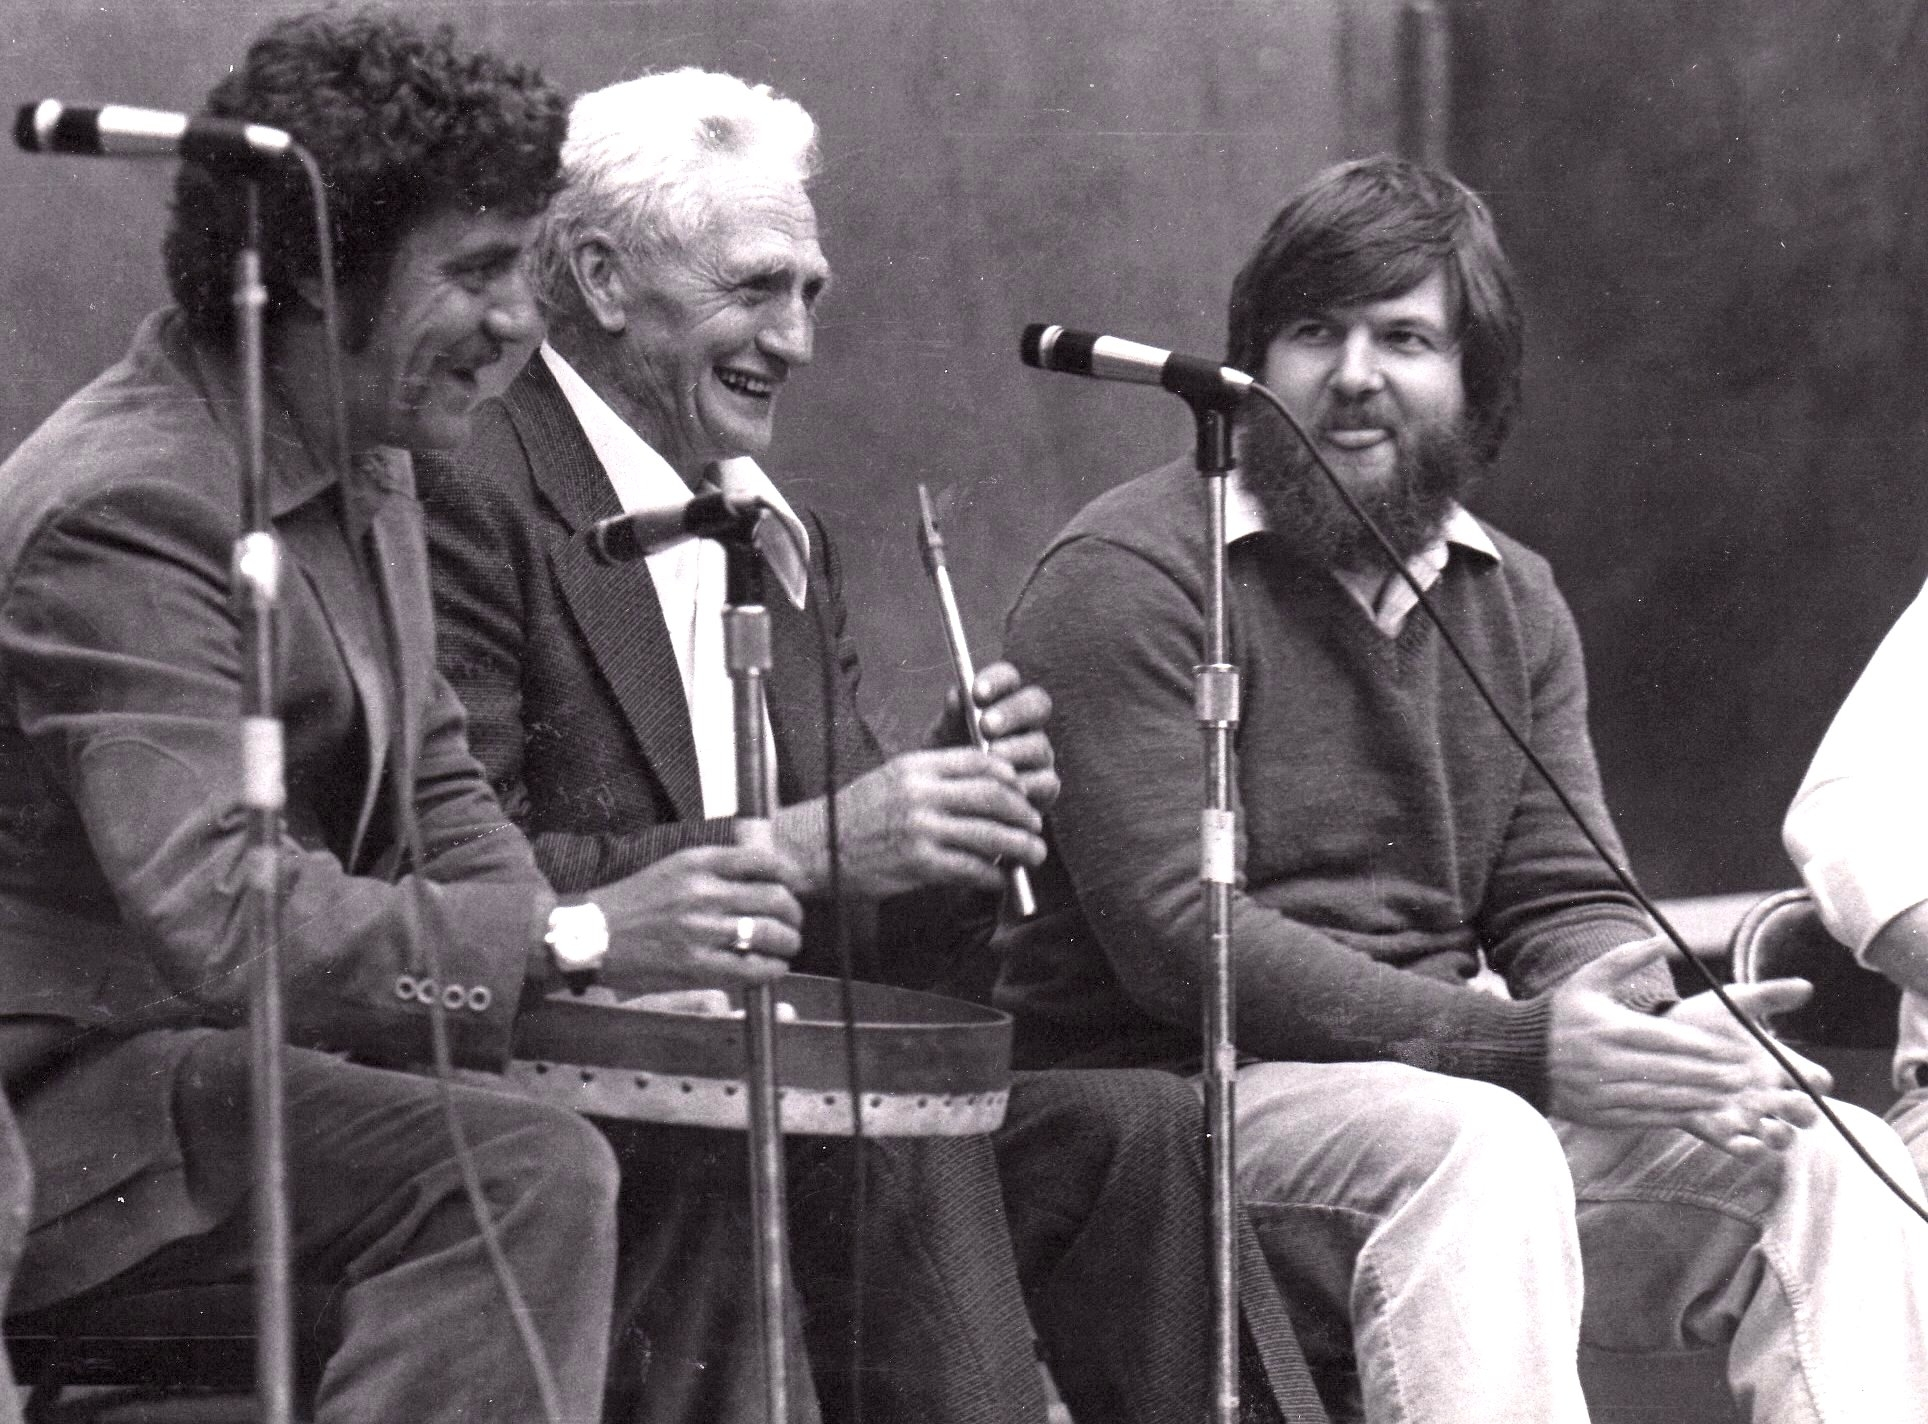 Patsy Judge and friends on stage at the 1978 Newfoundland Folk Festival / Len Penton, photographer